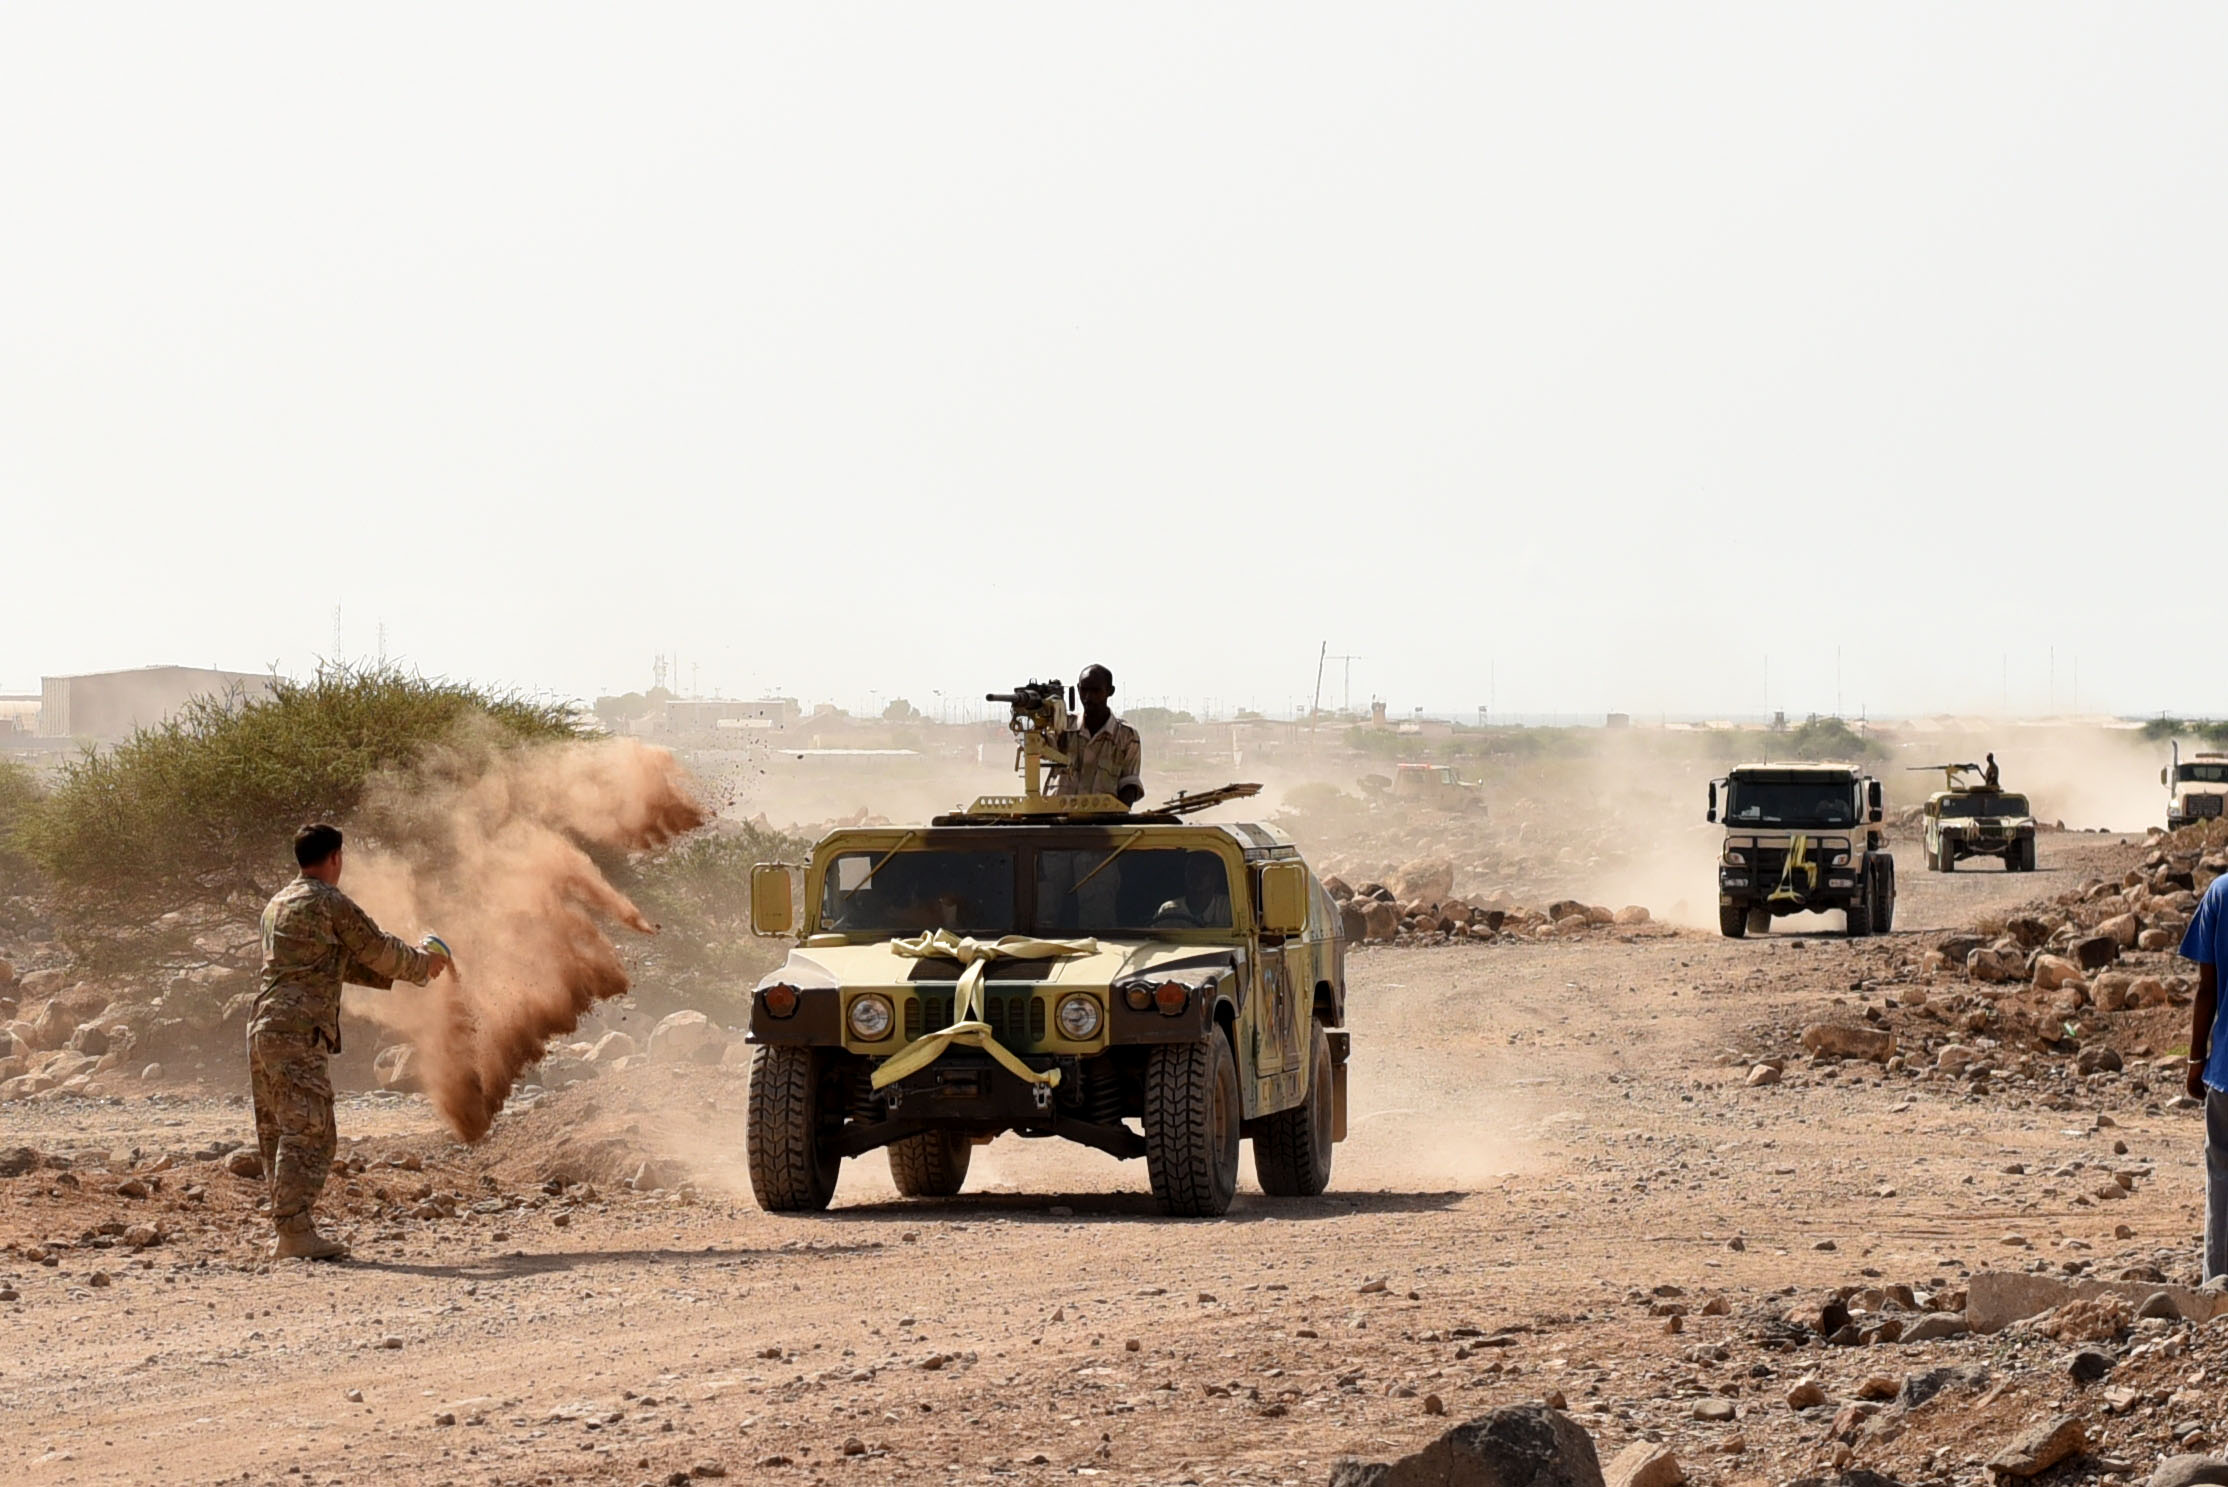 CAMP CHEIK OSMAN, Djibouti – U.S. Army Sgt. Robert Shelton, U.S. Army Regionally Aligned Forces instructor, throws dirt at a Humvee to simulate a roadside detonation causing immobility during Area Logistics Training final with Djiboutian Armed Forces (FAD) soldiers, May 16, 2016, at Camp Cheik Osman, Djibouti. The FAD soldiers tested combat skills they learned throughout the five month course demonstrating their reactions to various mock situations from convoying through a road block, identifying mock roadside bombs, medical care, and vehicle recovery. (U.S. Air Force photo by Staff Sgt. Tiffany DeNault)